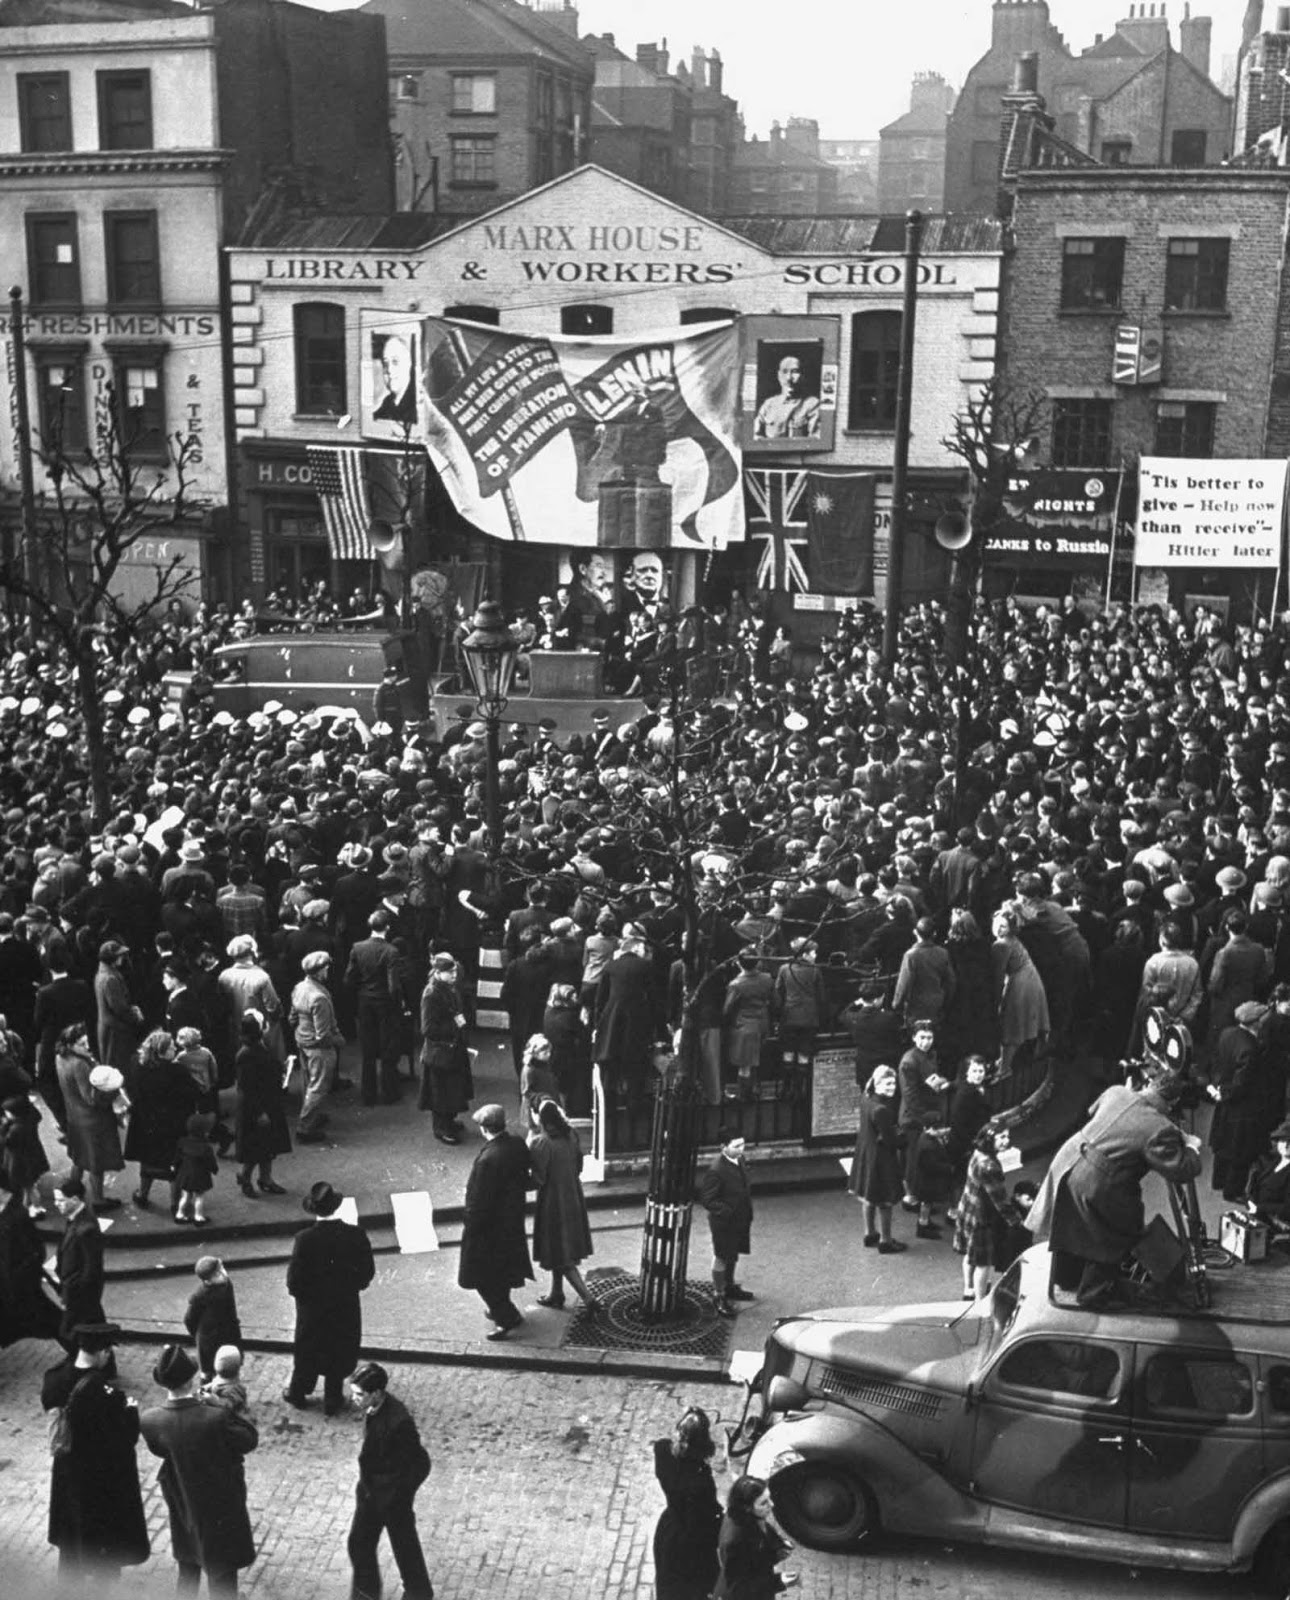 Mass demonstration at Clerkenwell Green in front of Karl Marx's house, now the headquarters of the Communist Party in London. 1942.